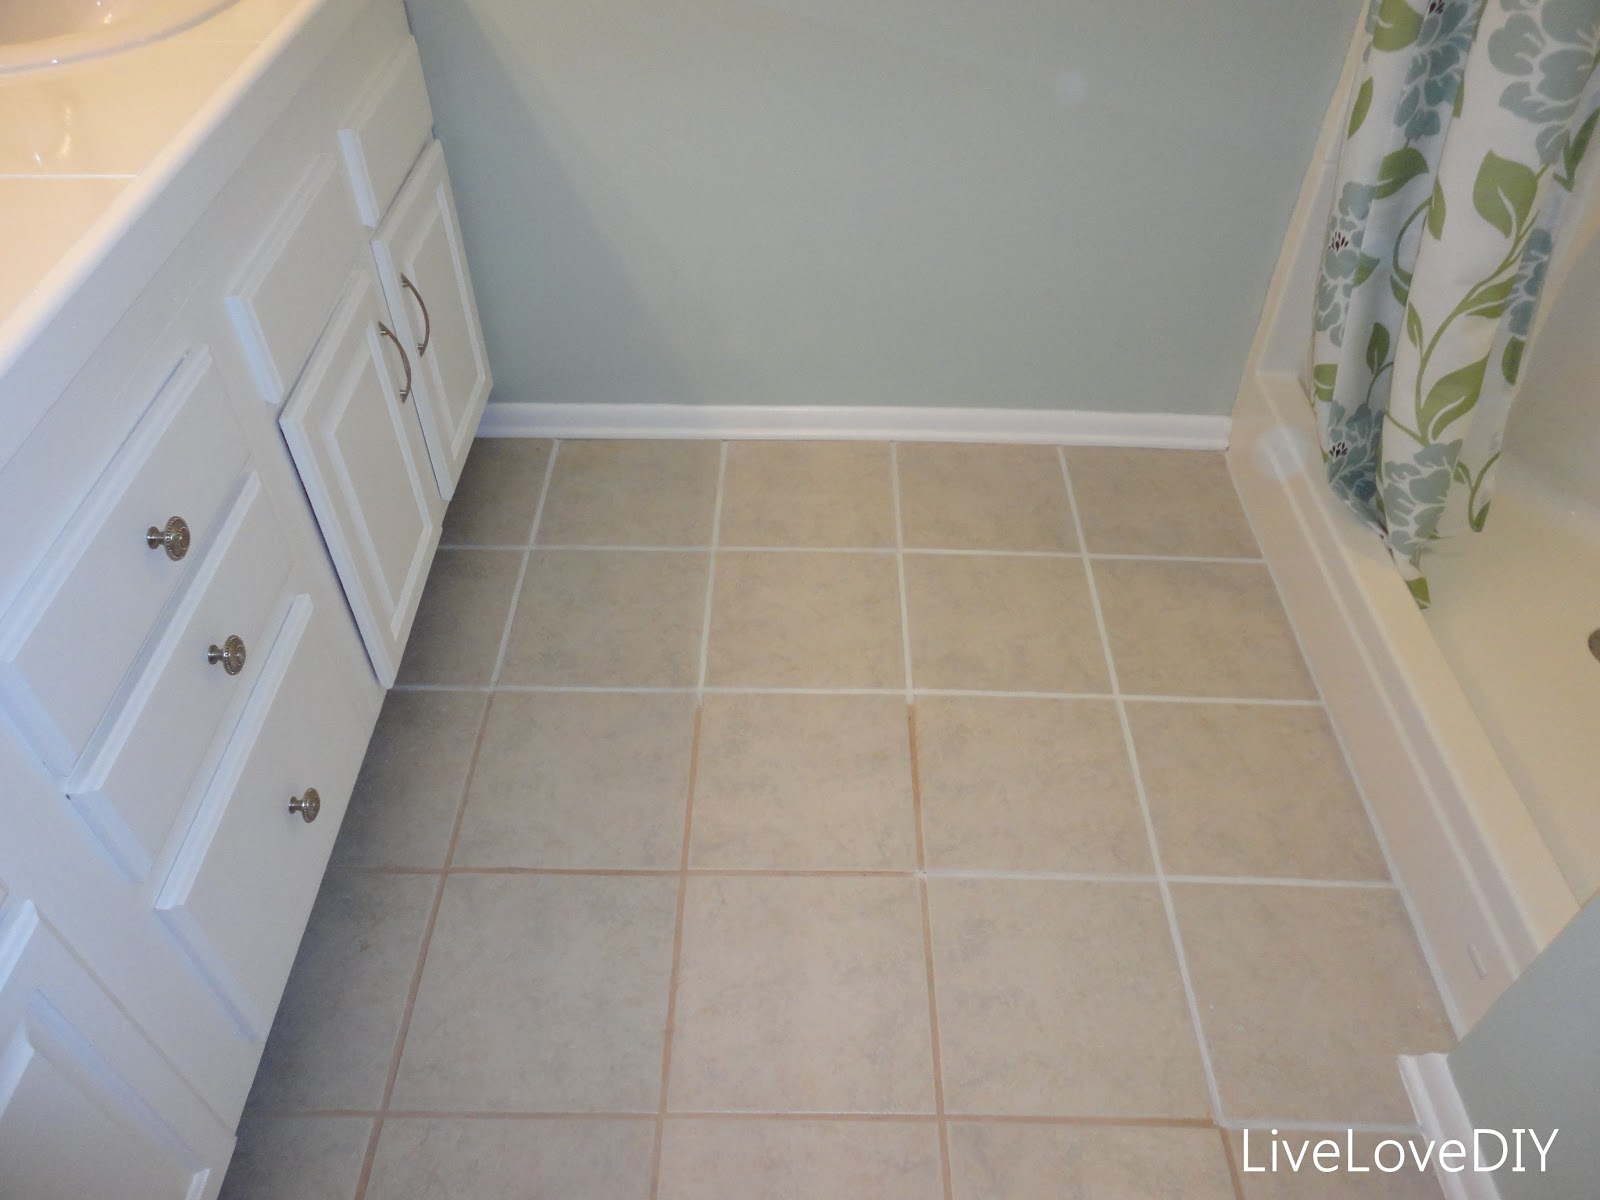 LiveLoveDIY How To Restore Dirty Tile Grout - How to fix bathroom tile grout for bathroom decor ideas